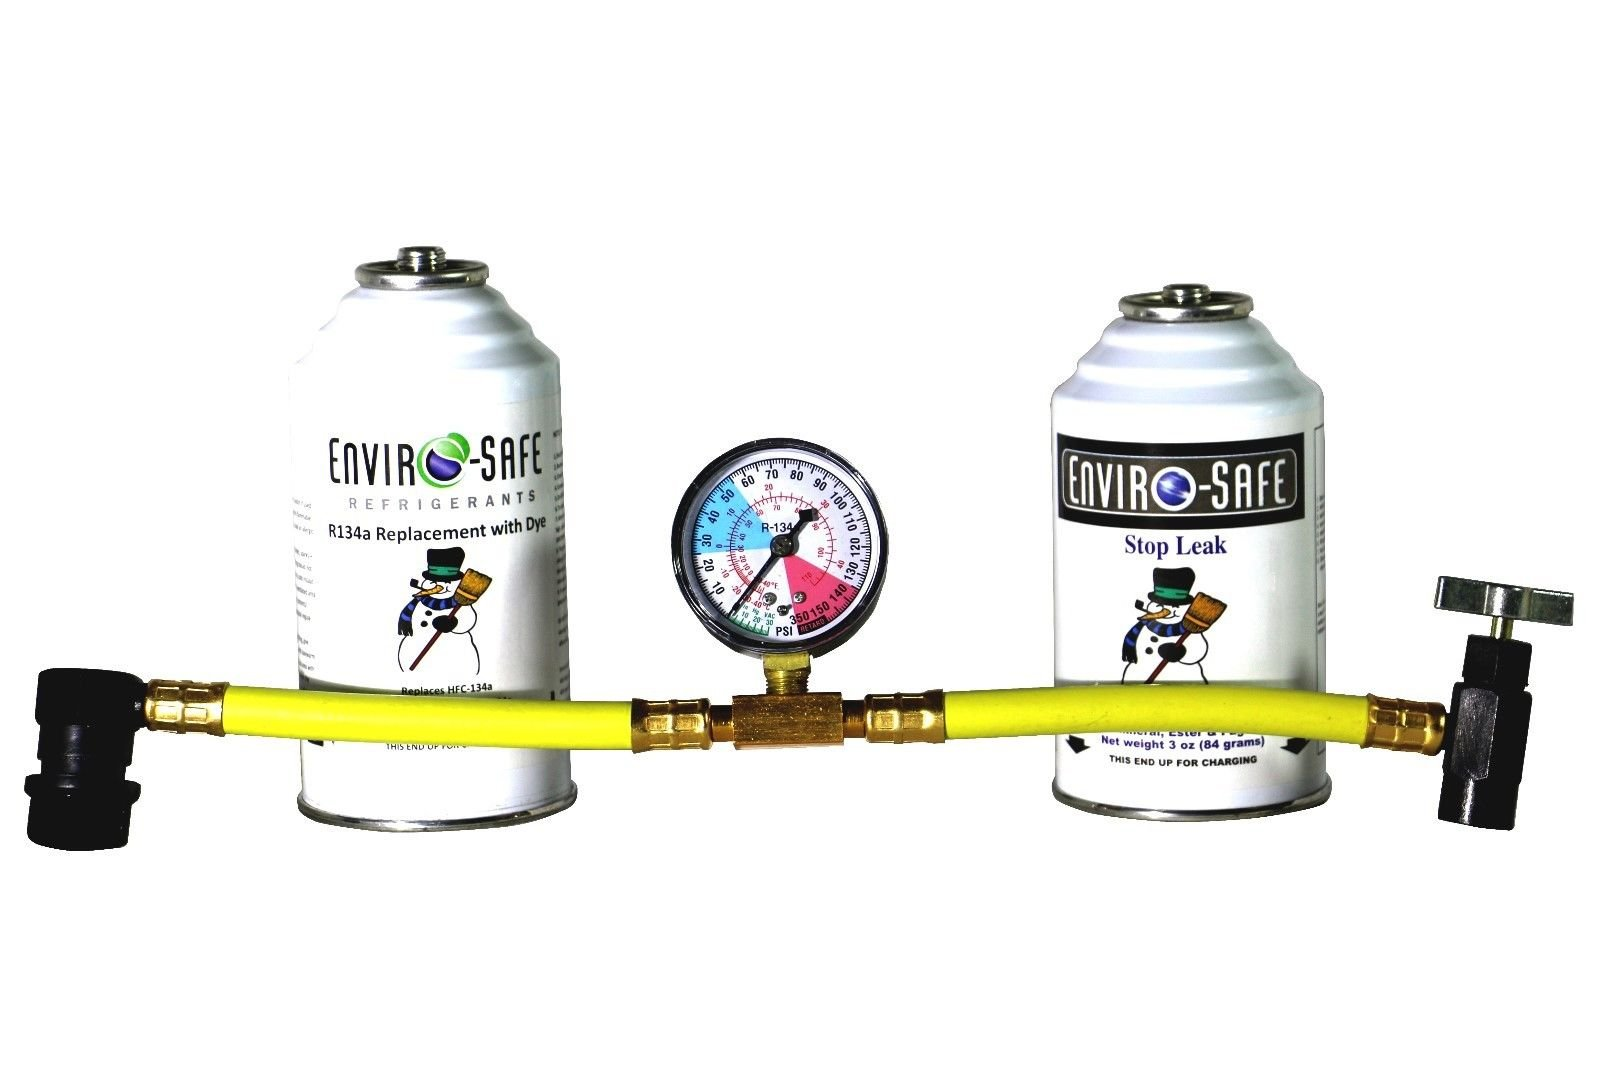 Enviro-Safe 1 Stop Leak and 1 R134a Replacement with Dye Kit with R134 Tap Gauge #RSG-3